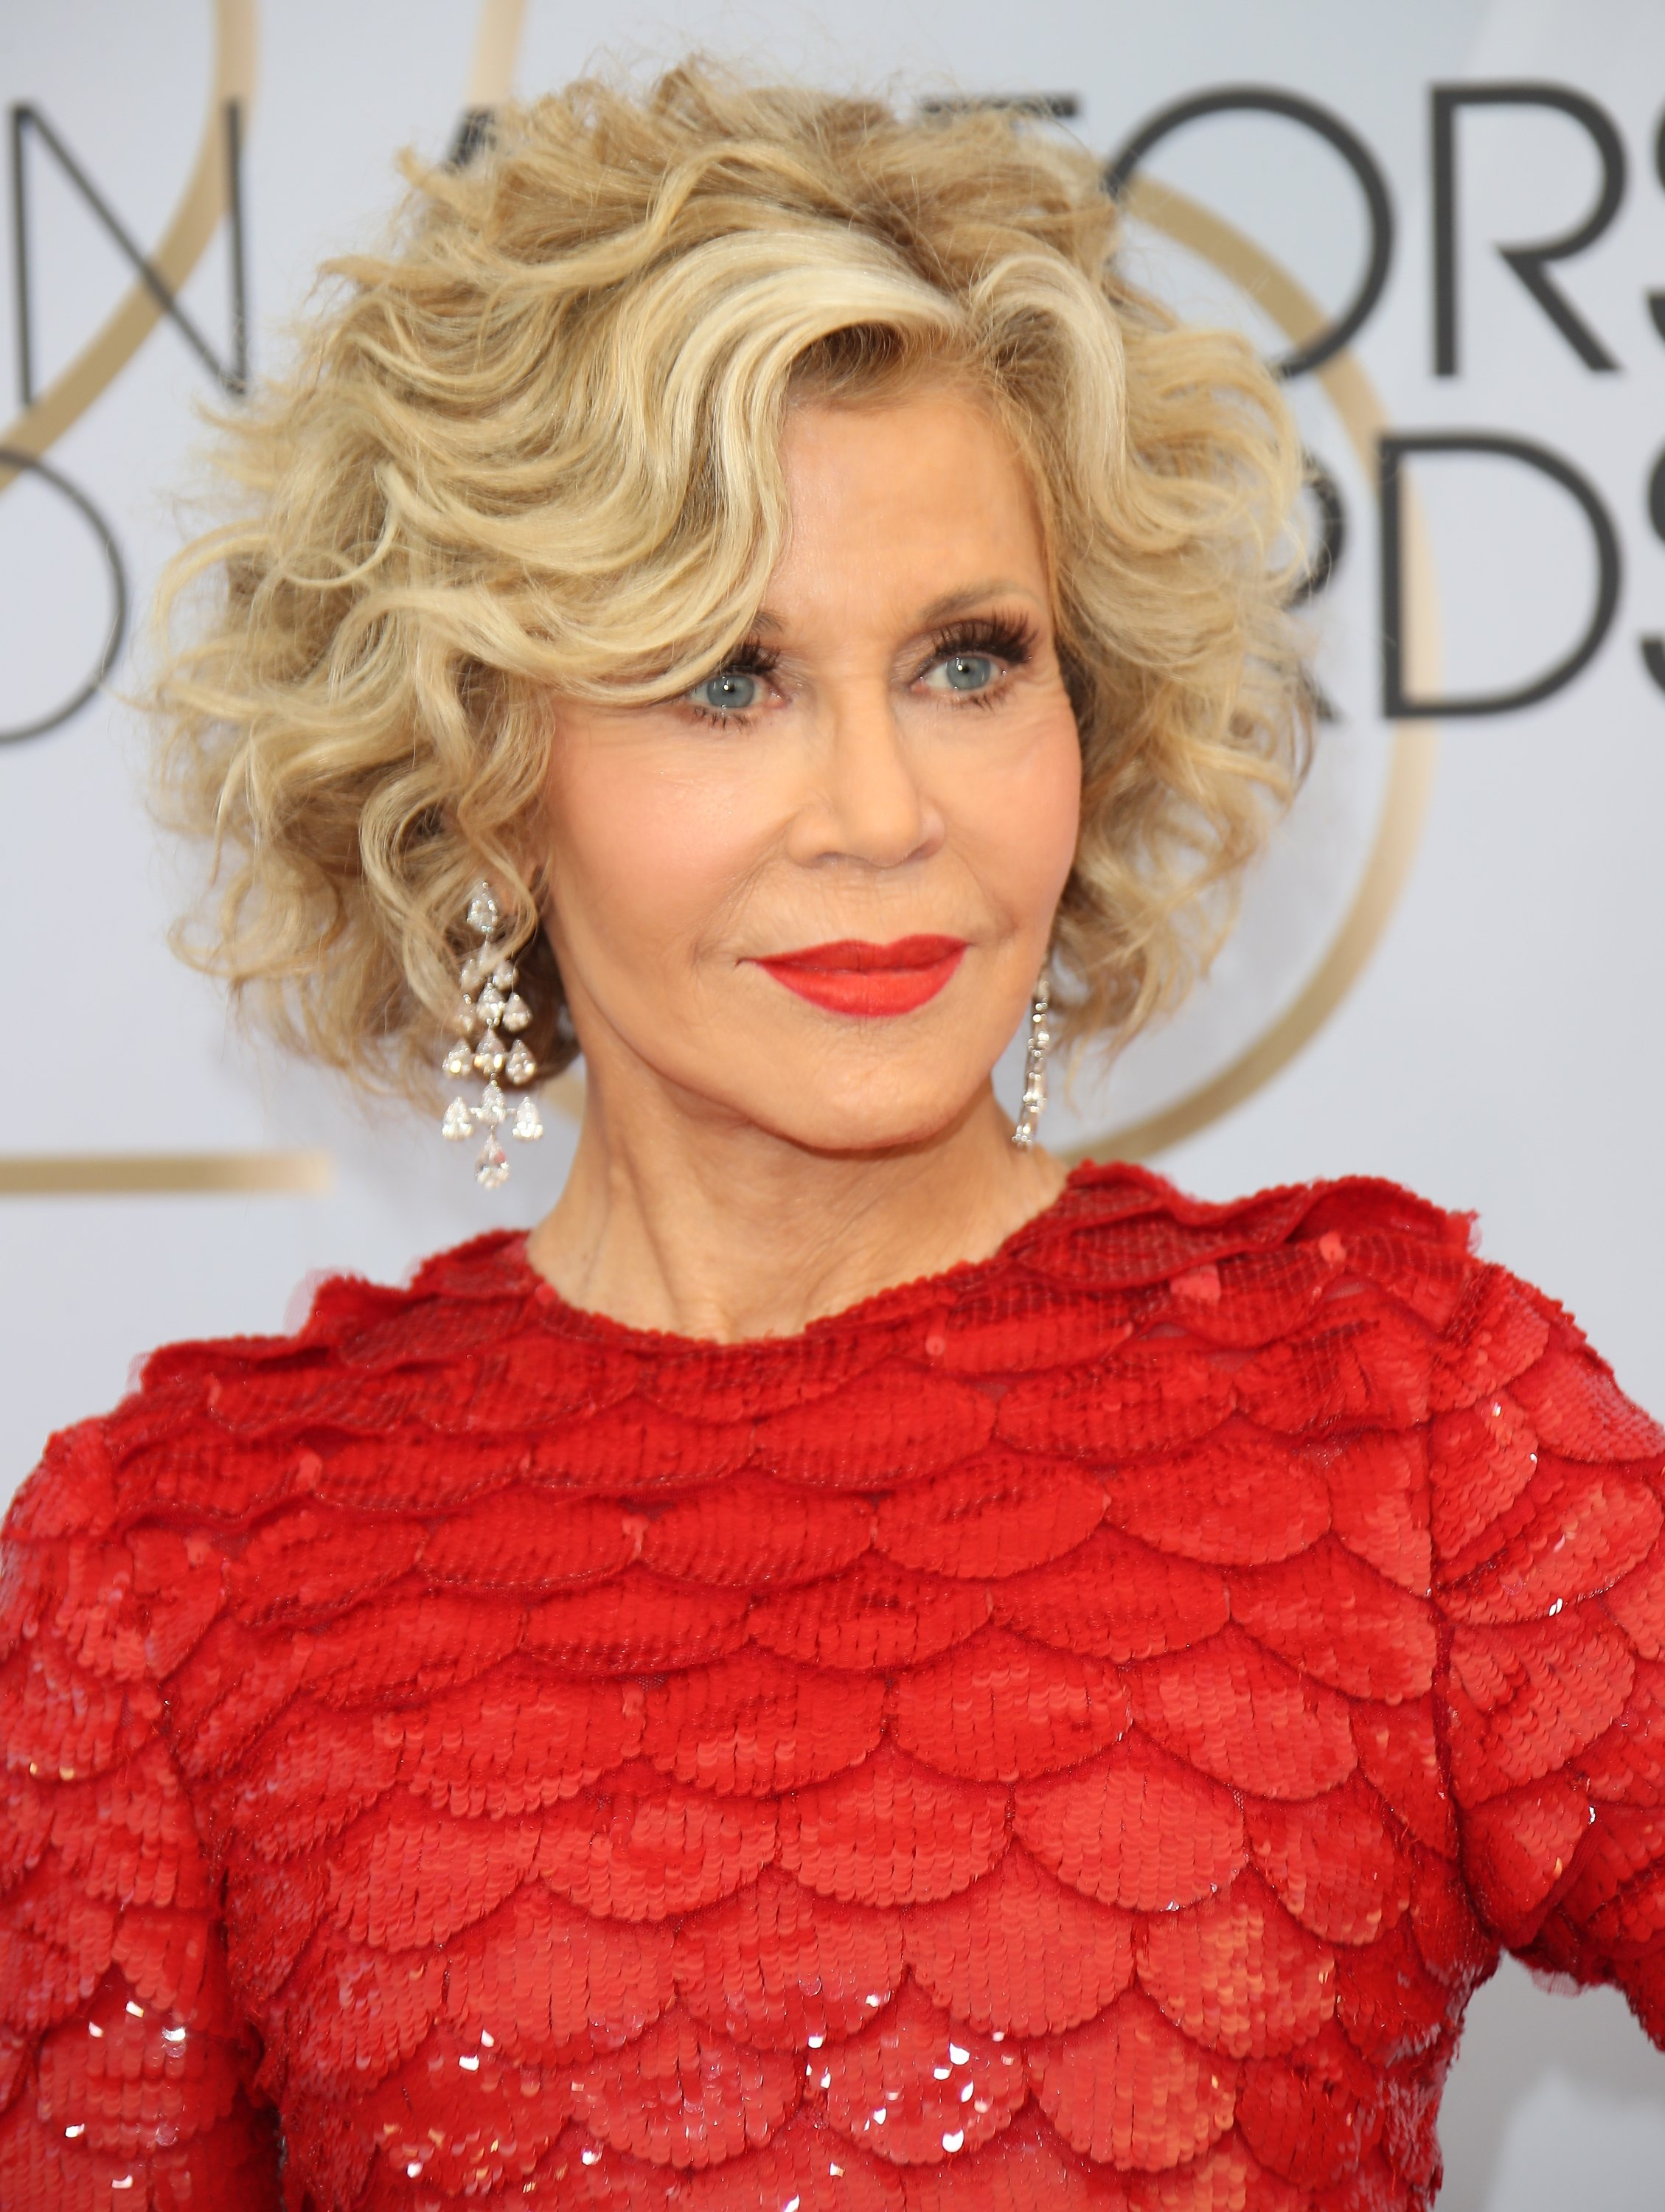 Jane Fonda pictured at the 25th Annual Screen Actors Guild Awards at The Shrine Auditorium, 2019, California.   Photo: Getty Images.